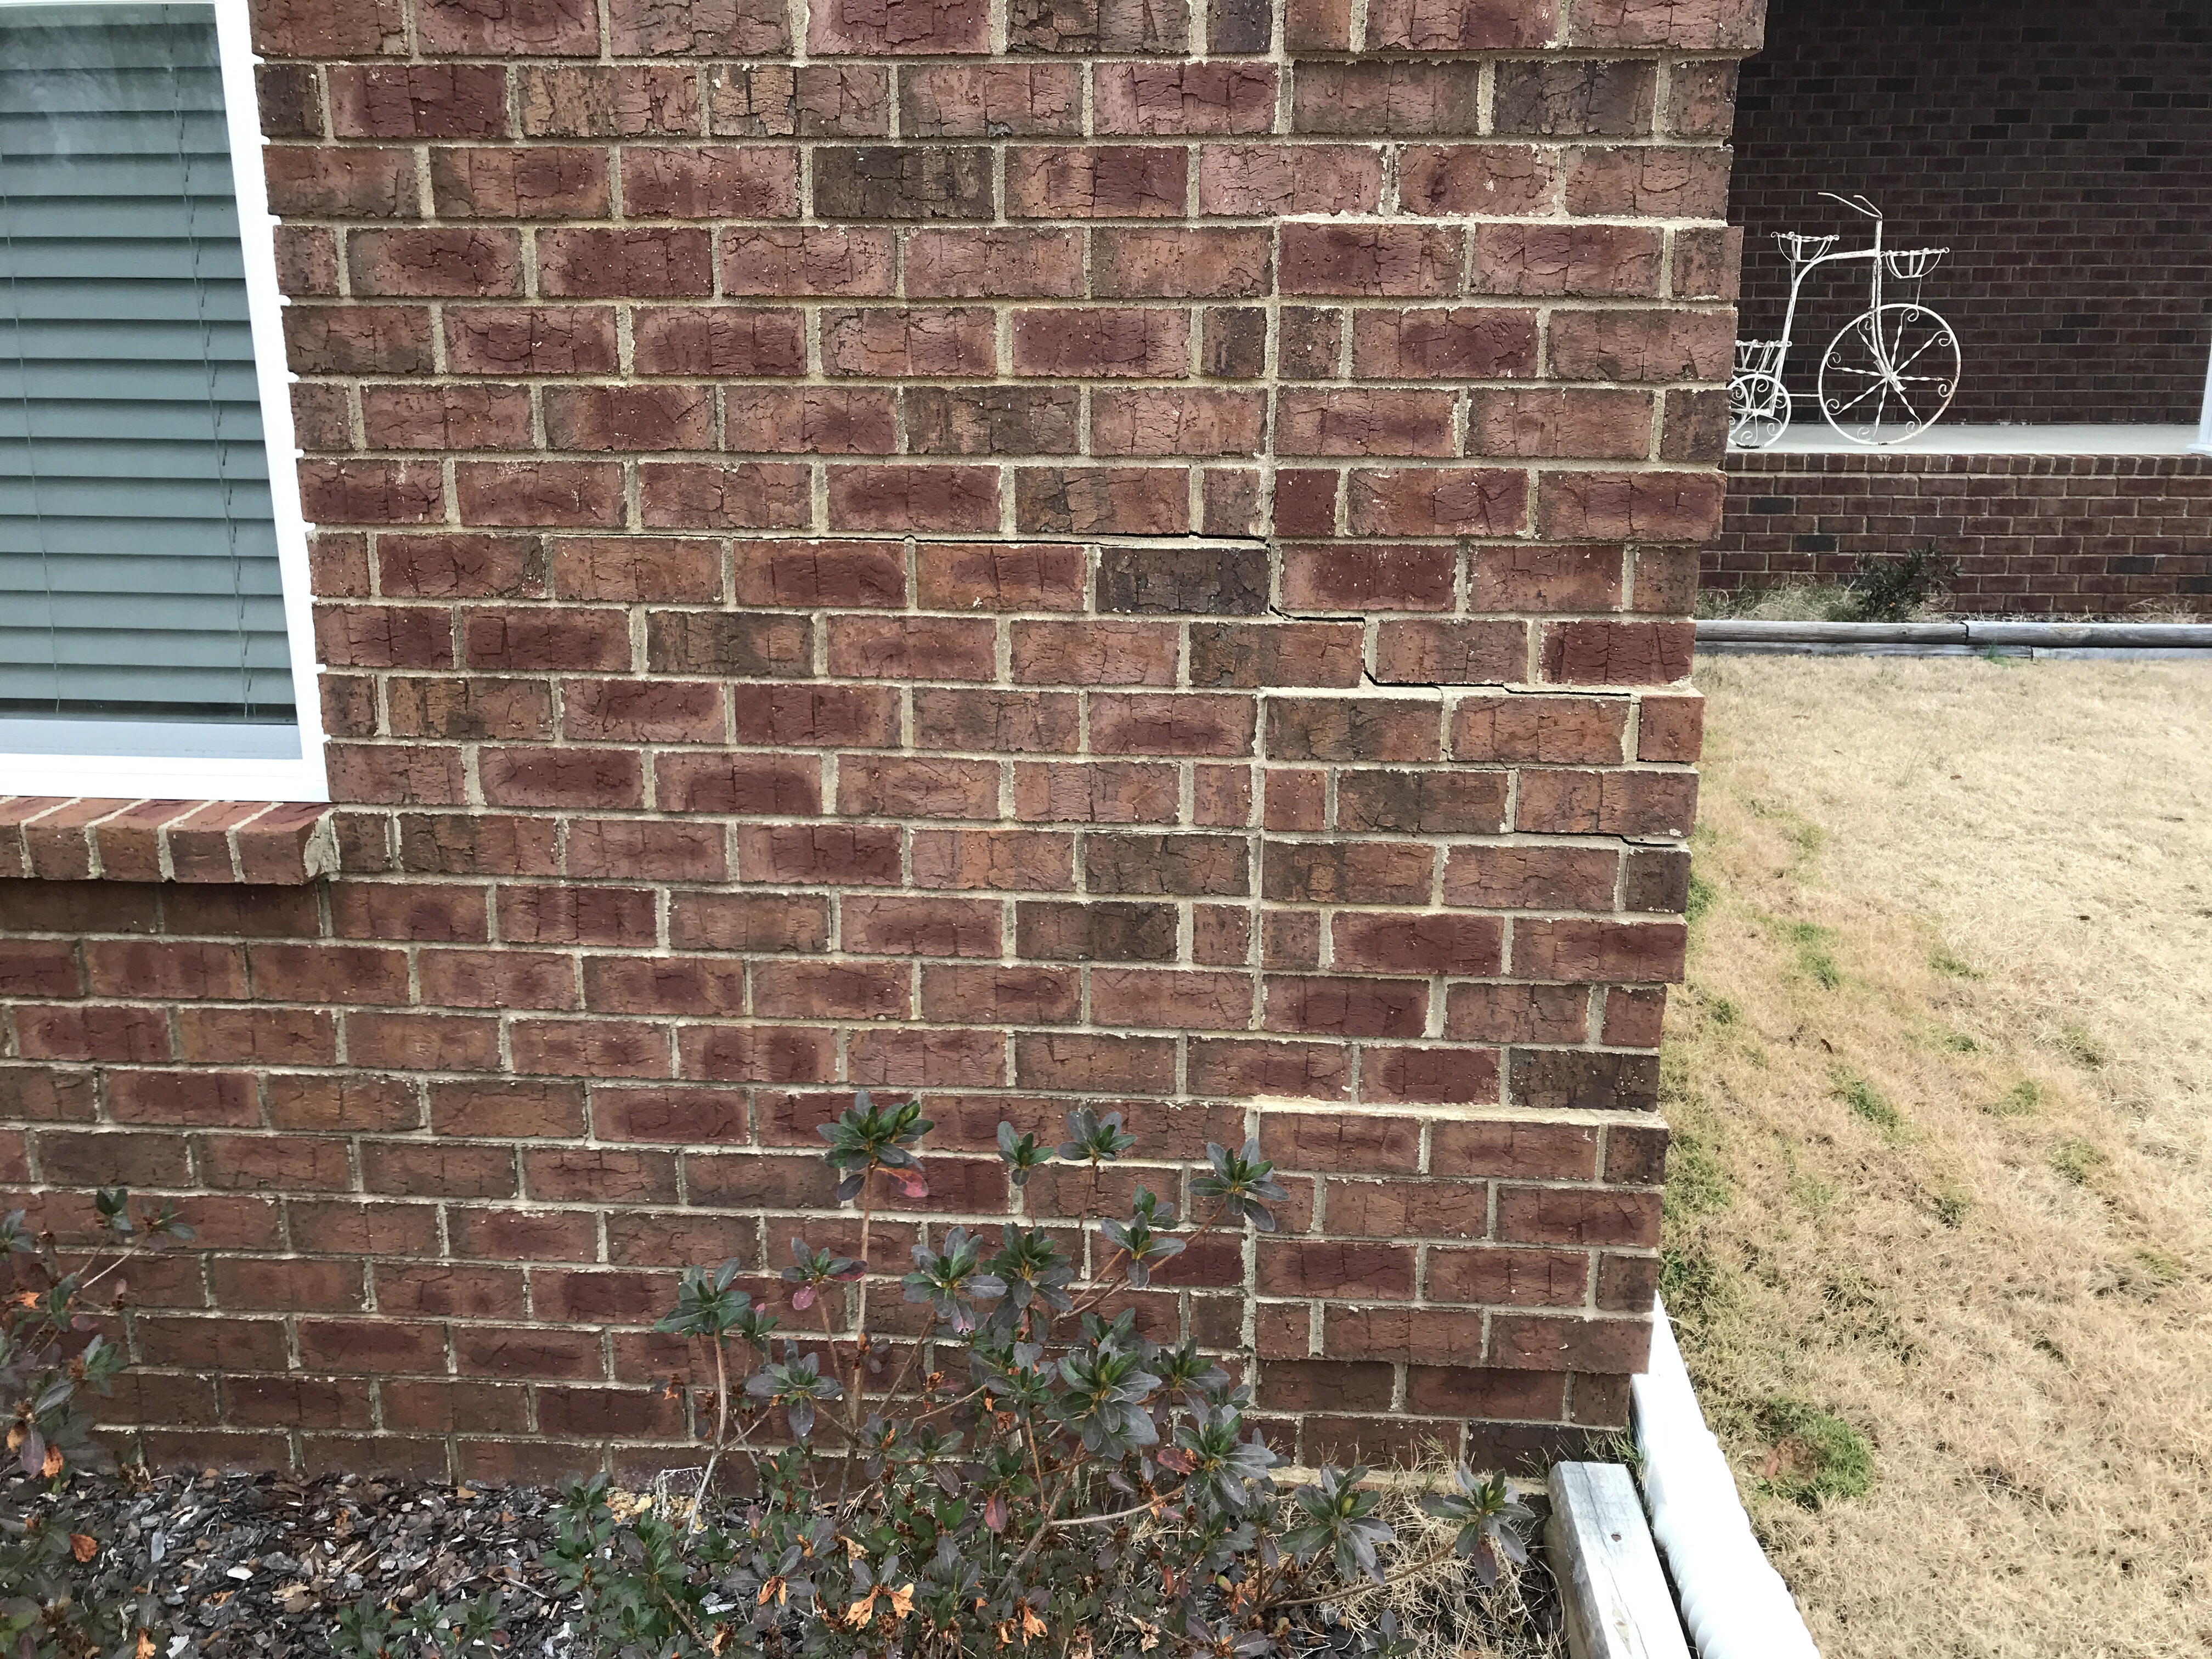 Horizontal to stair stepping crack on brick exterior wall